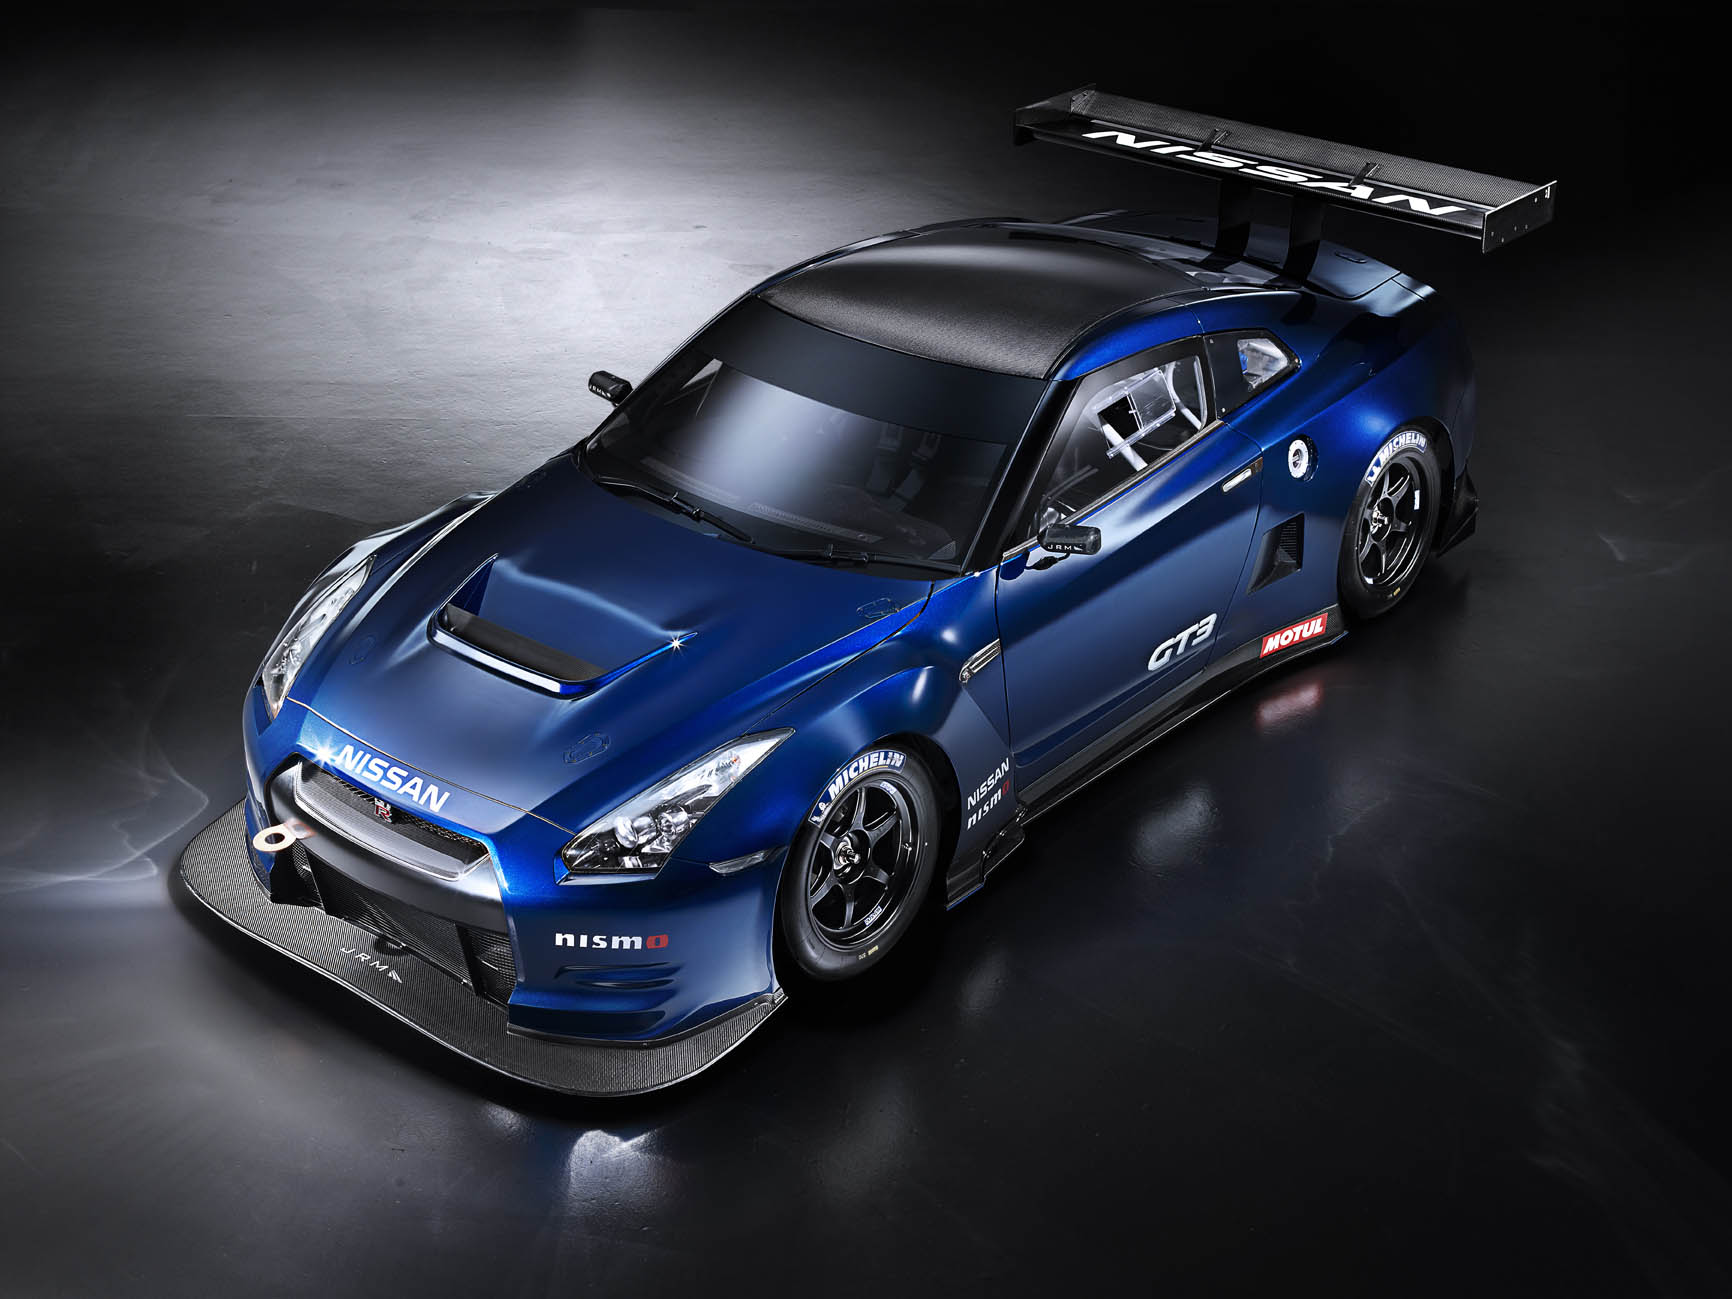 2012 nissan gt r nismo gt3 pictures photos wallpapers and video top speed. Black Bedroom Furniture Sets. Home Design Ideas